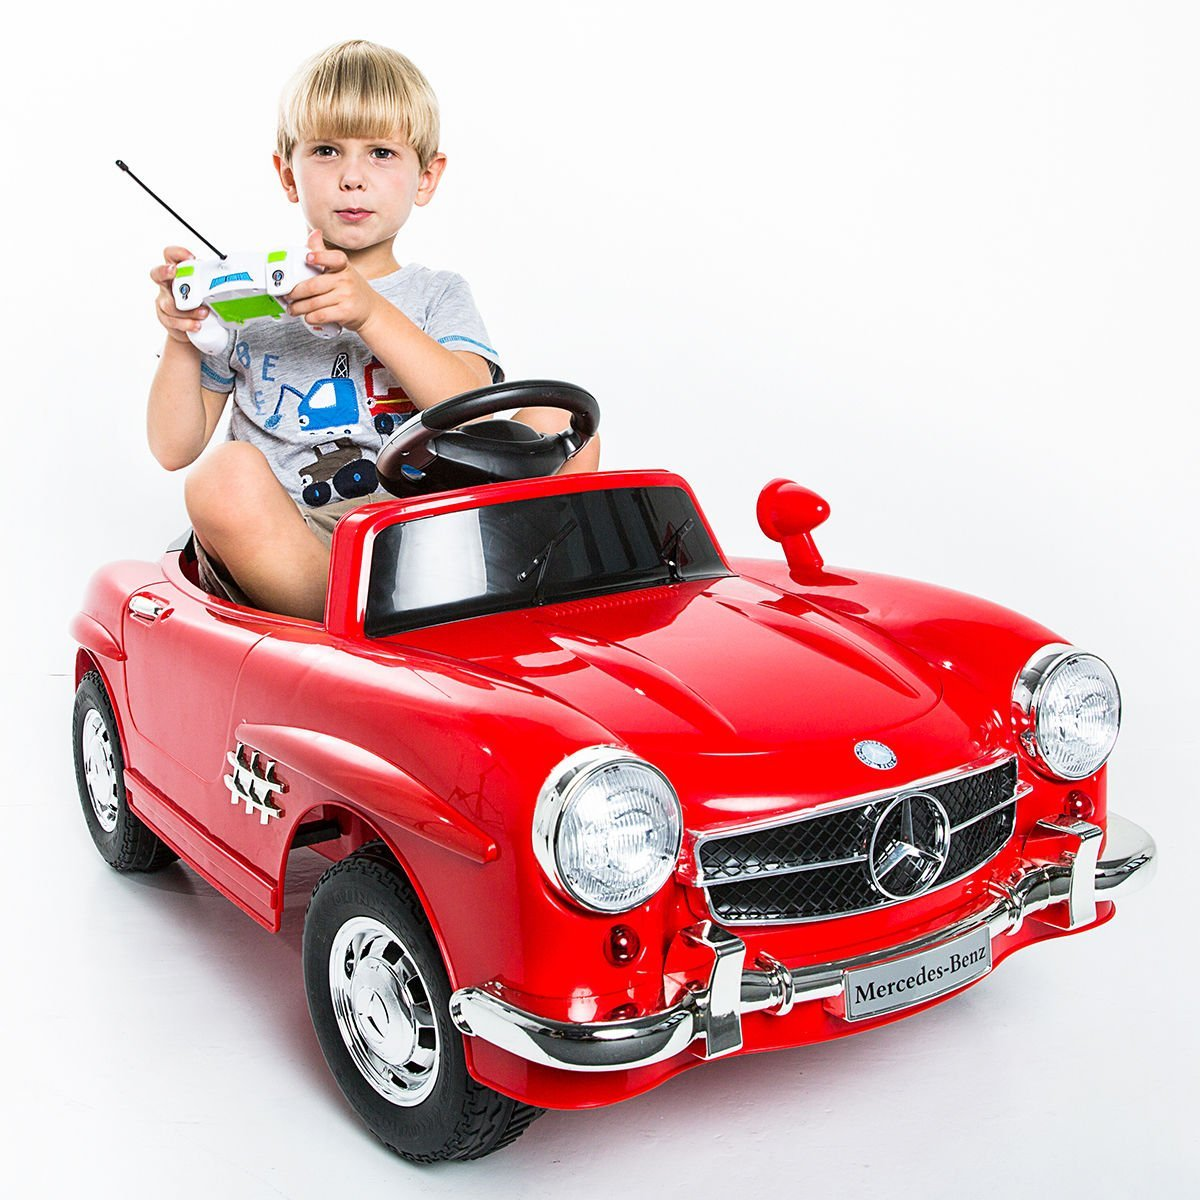 Top 15 best selling electric cars toy review in 2018 for Mercedes benz toddler car